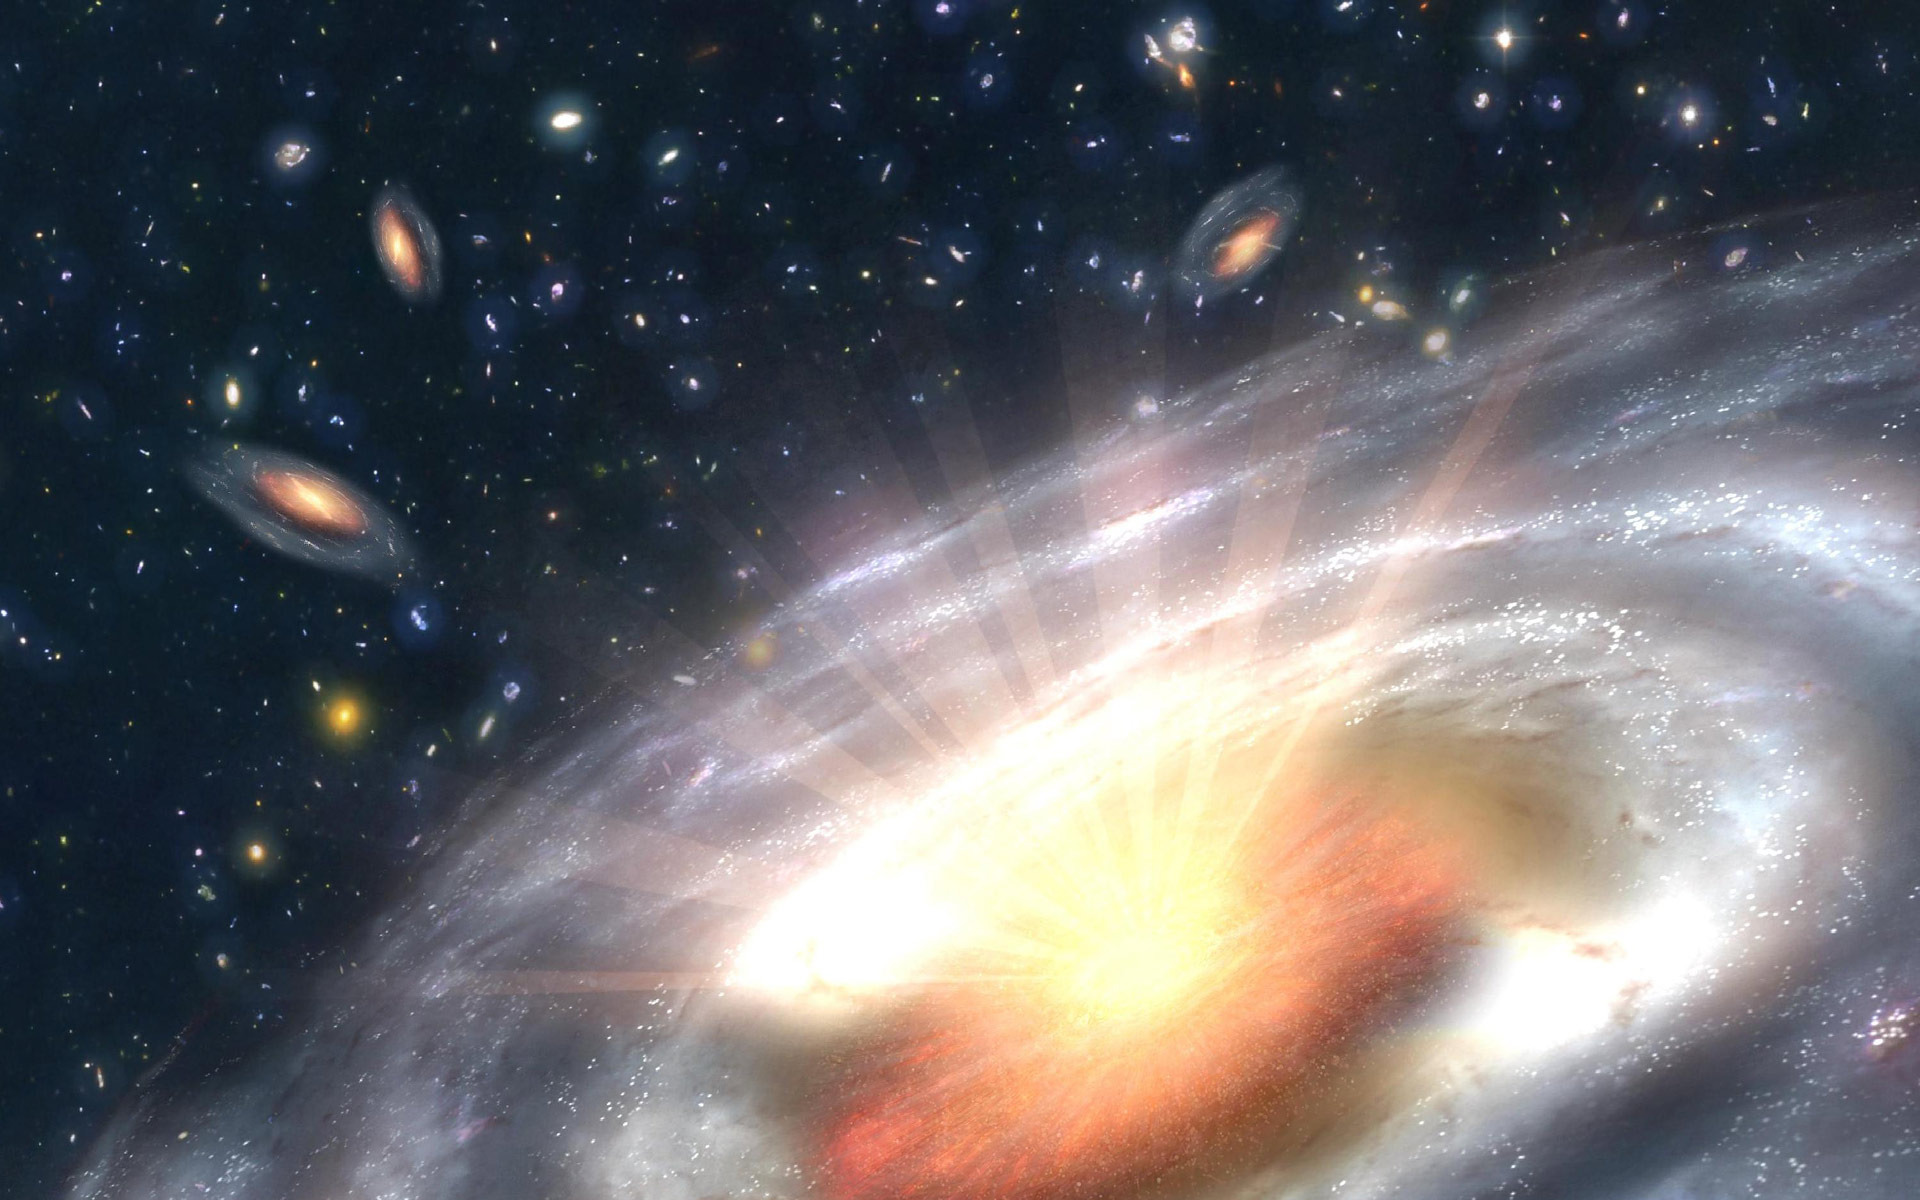 galaxies sucked in the black hole